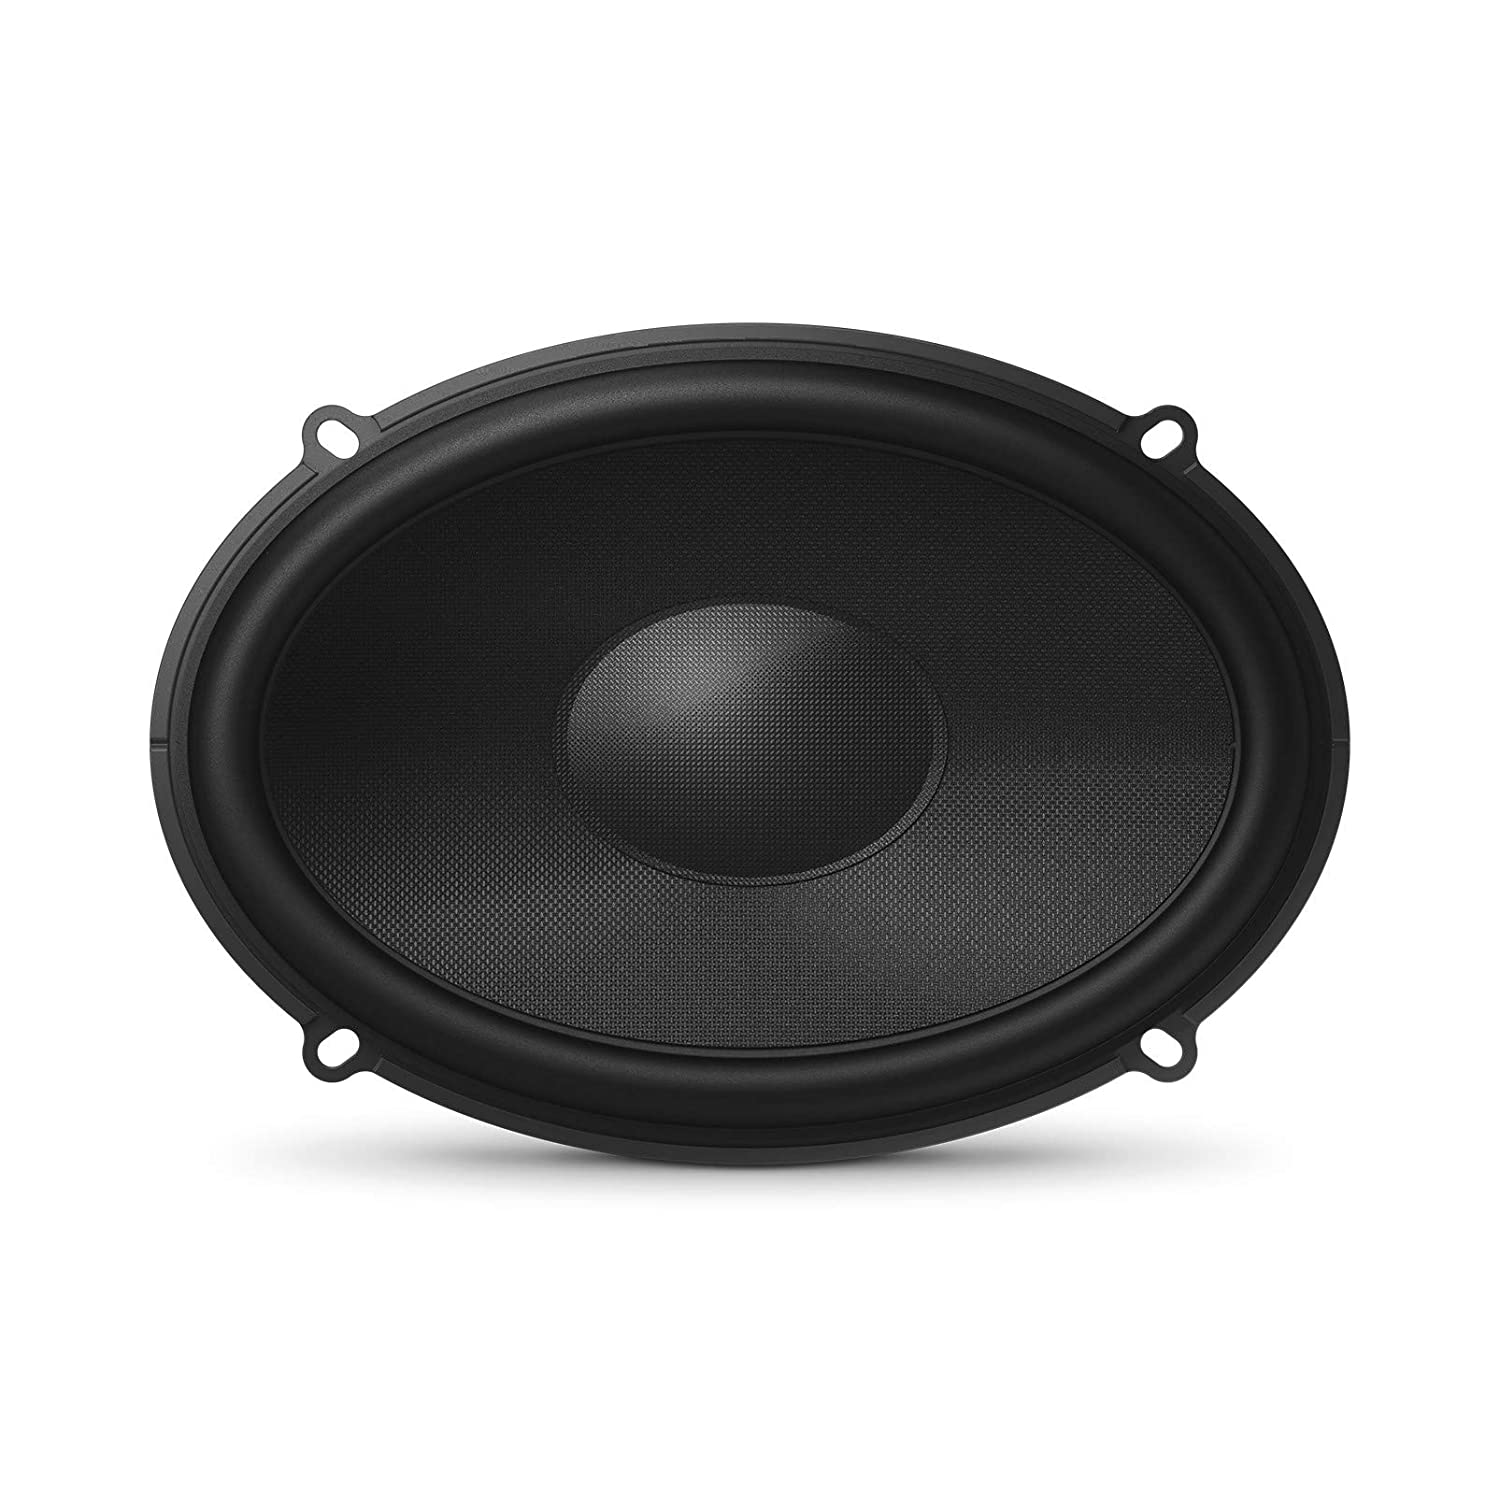 JBL Stadium GTO960C 6x9 High-Performance Multi-Element Speakers and Component System